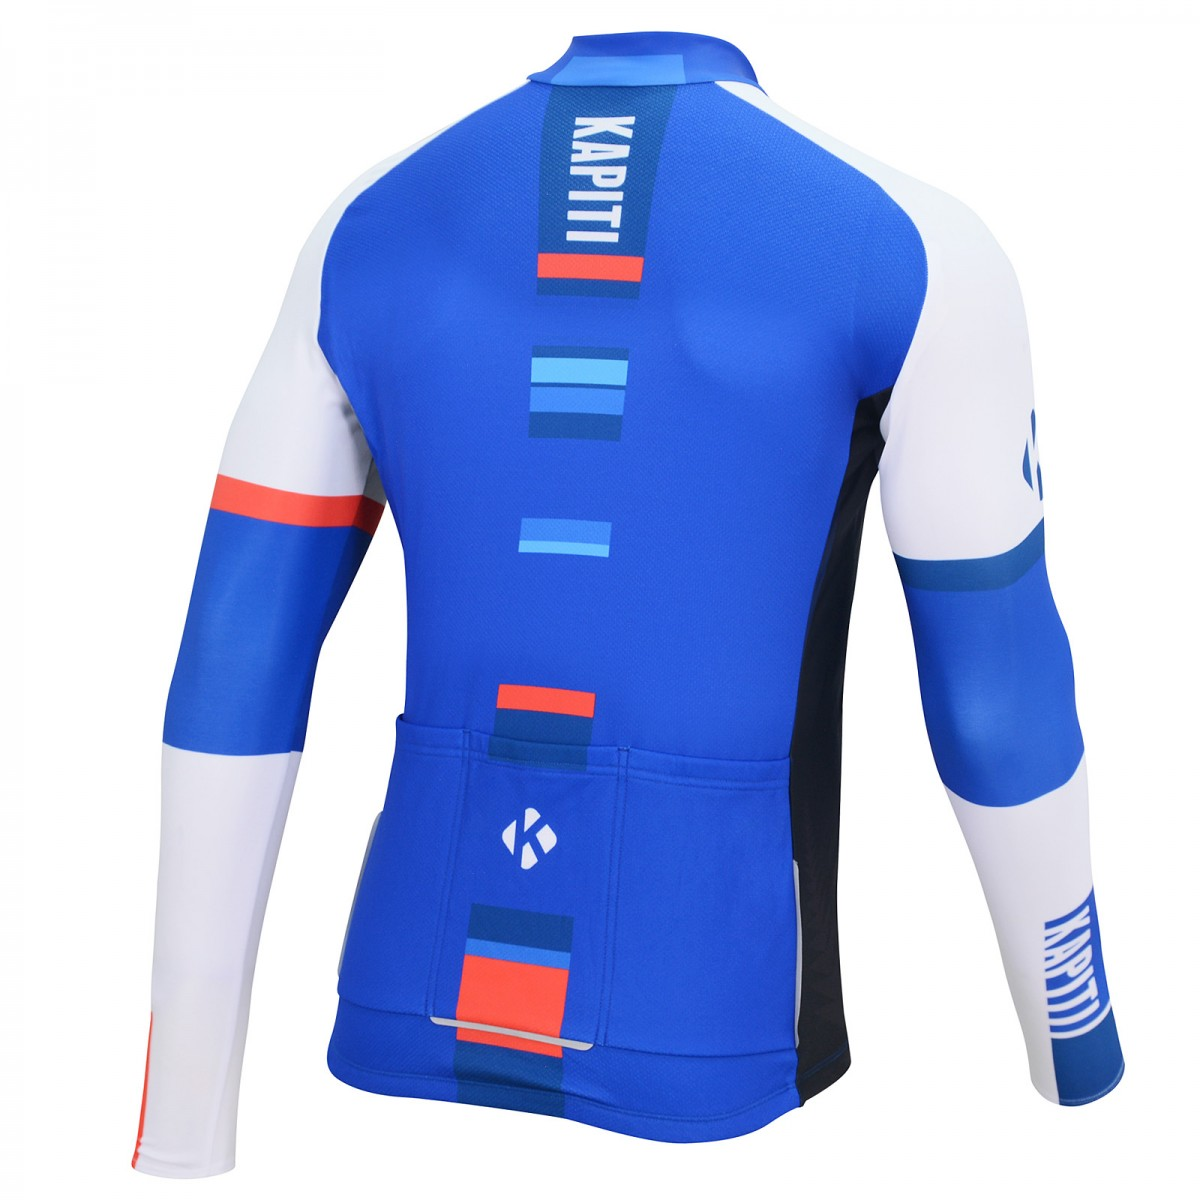 JLM4001 Rear Pro Aero Winter Jersey